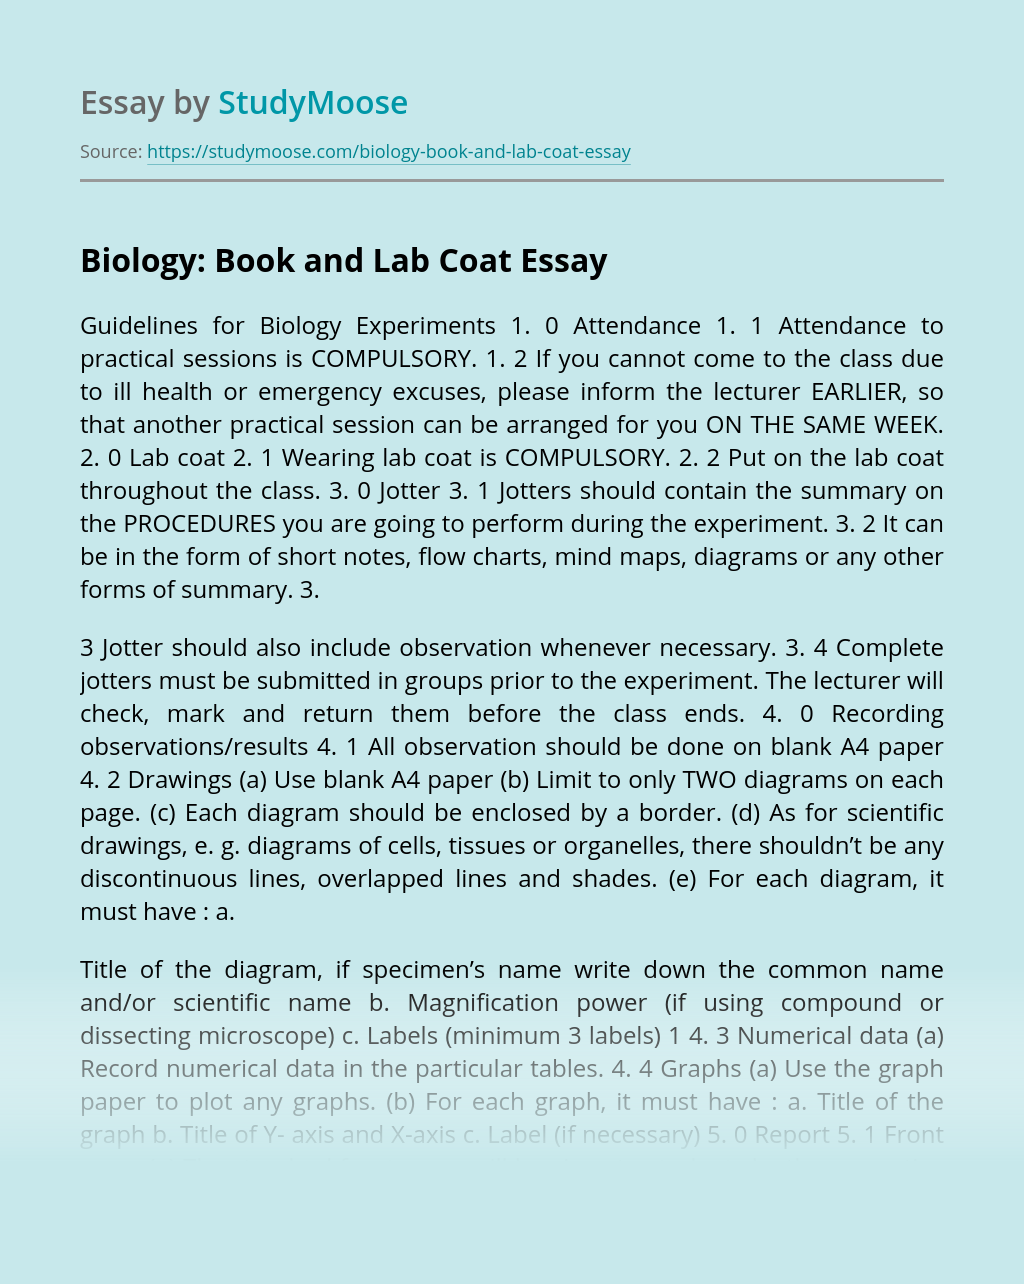 Biology: Book and Lab Coat